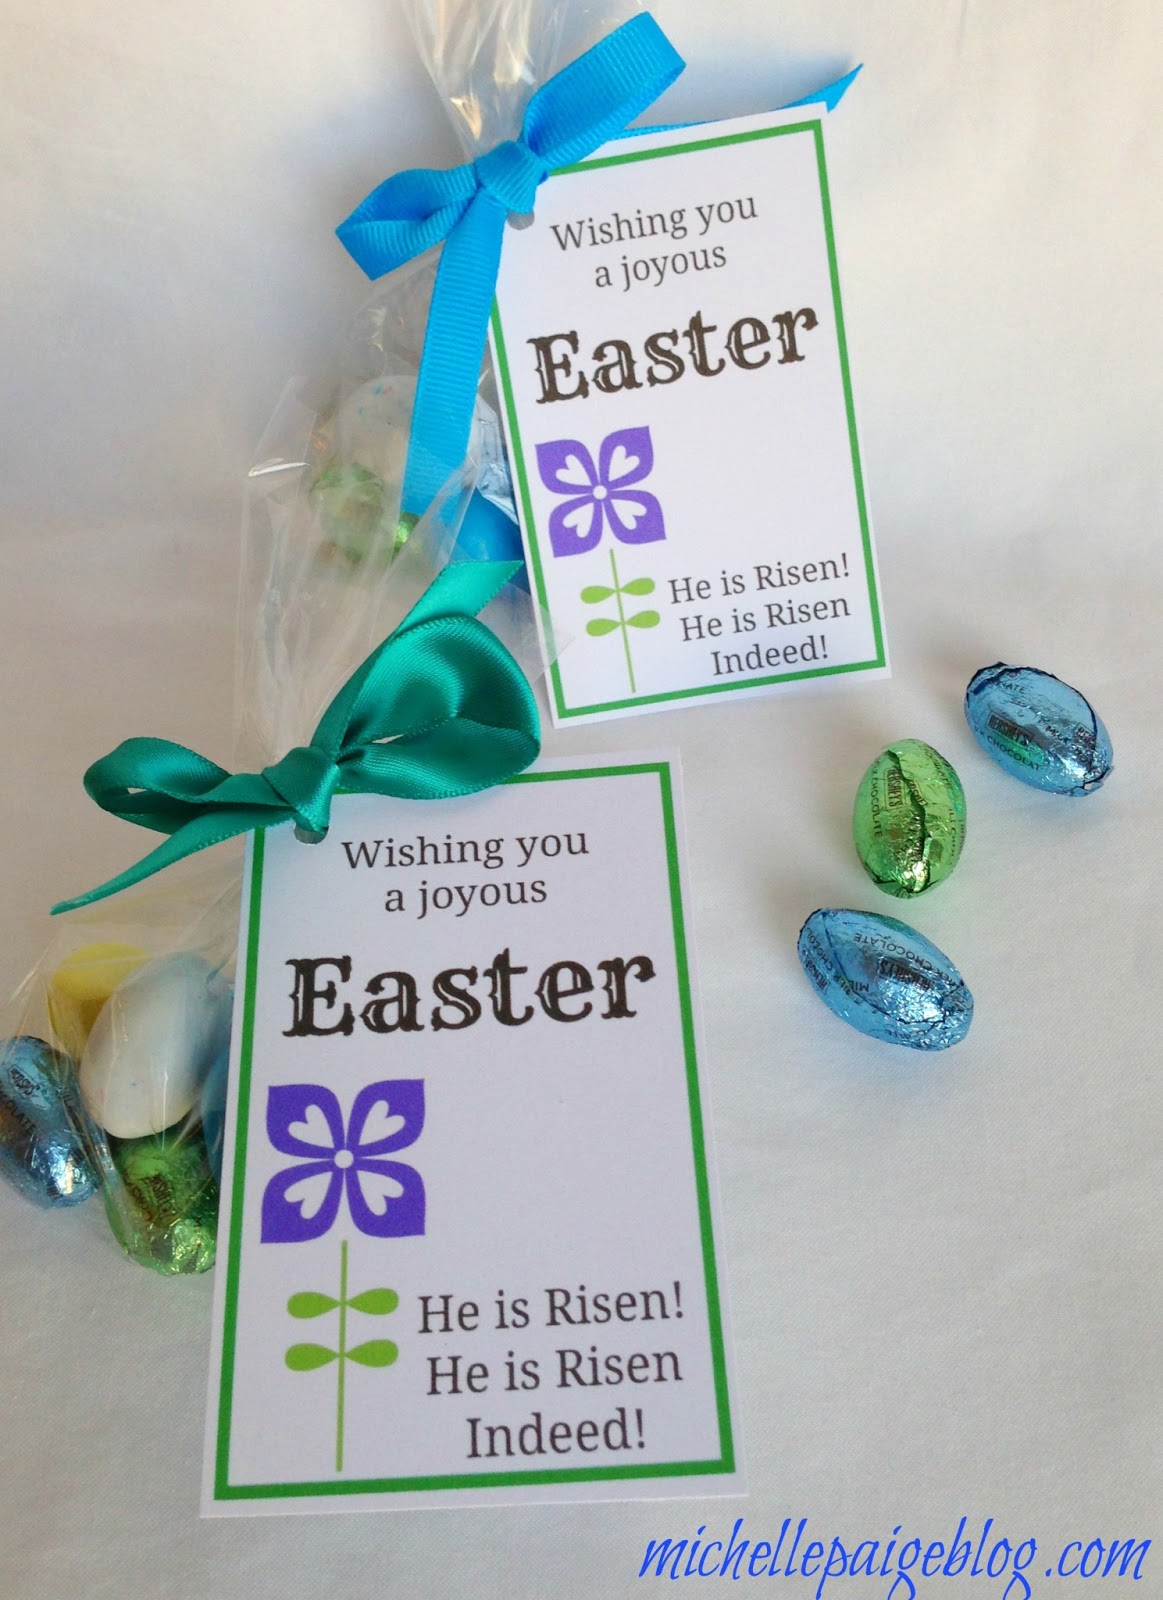 Michelle paige blogs easter favors for teachers friends and family easter favors for teachers friends and family negle Choice Image